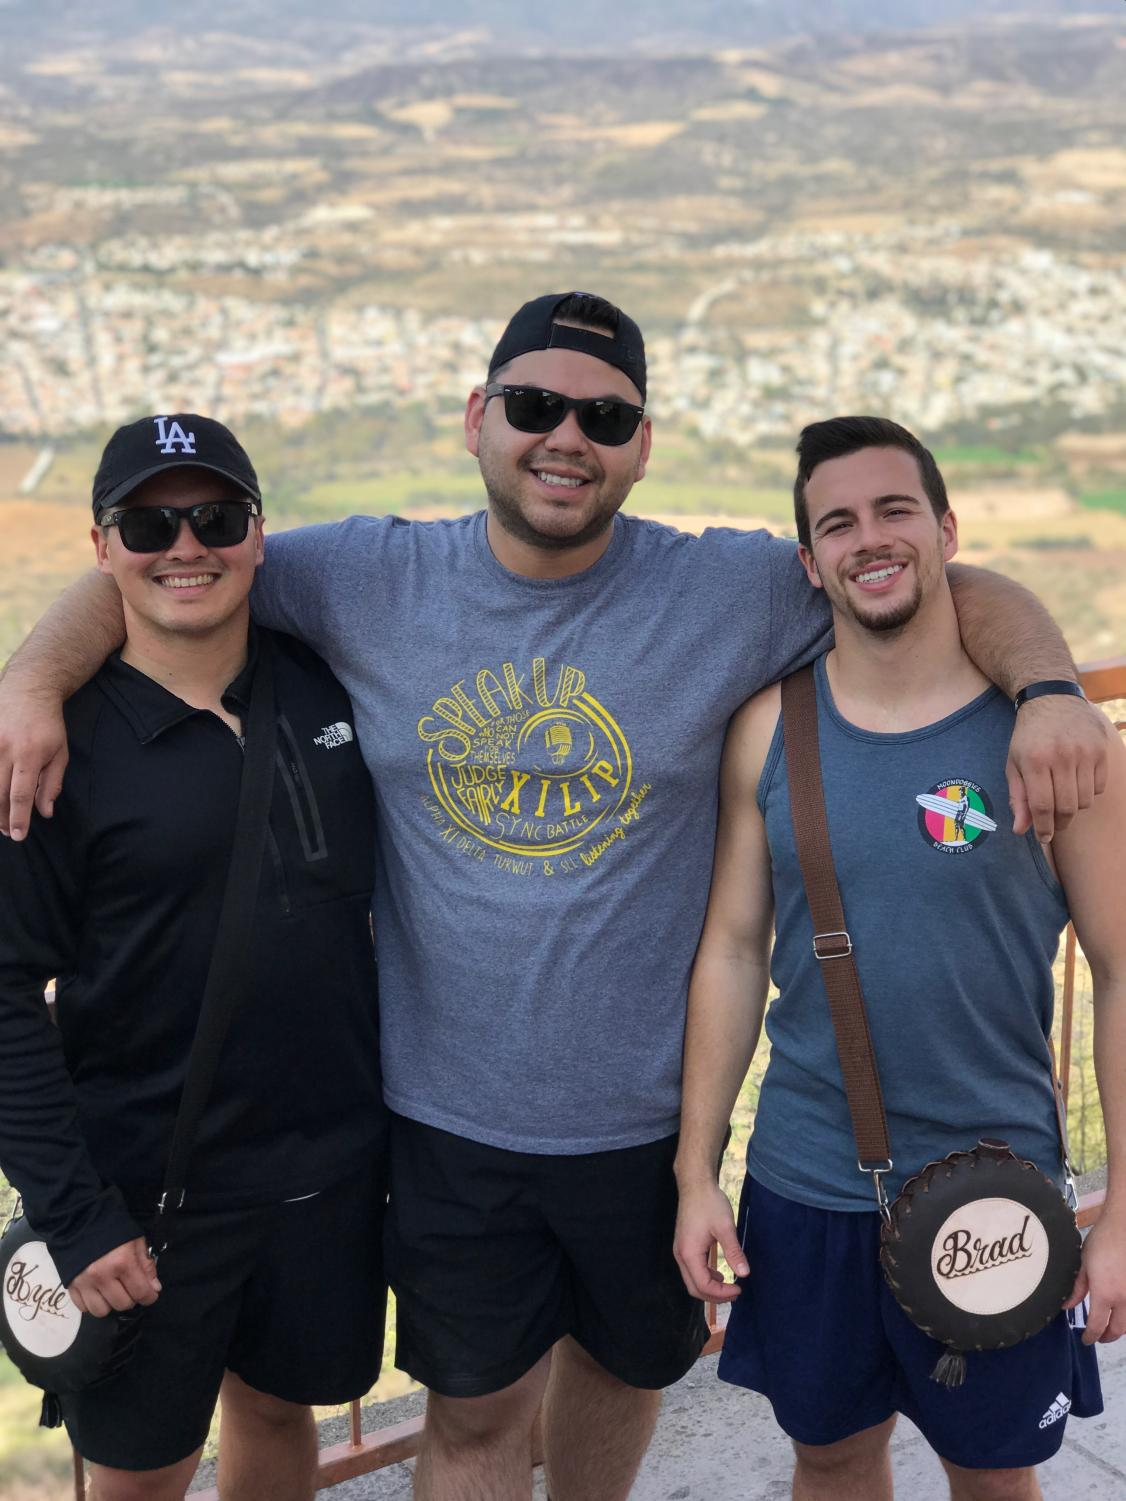 From left to right: Joe Sandoval, Kyle Azcuna and Brad Kremer in Jalpa, Zacatecas on Dec. 30, 2017.